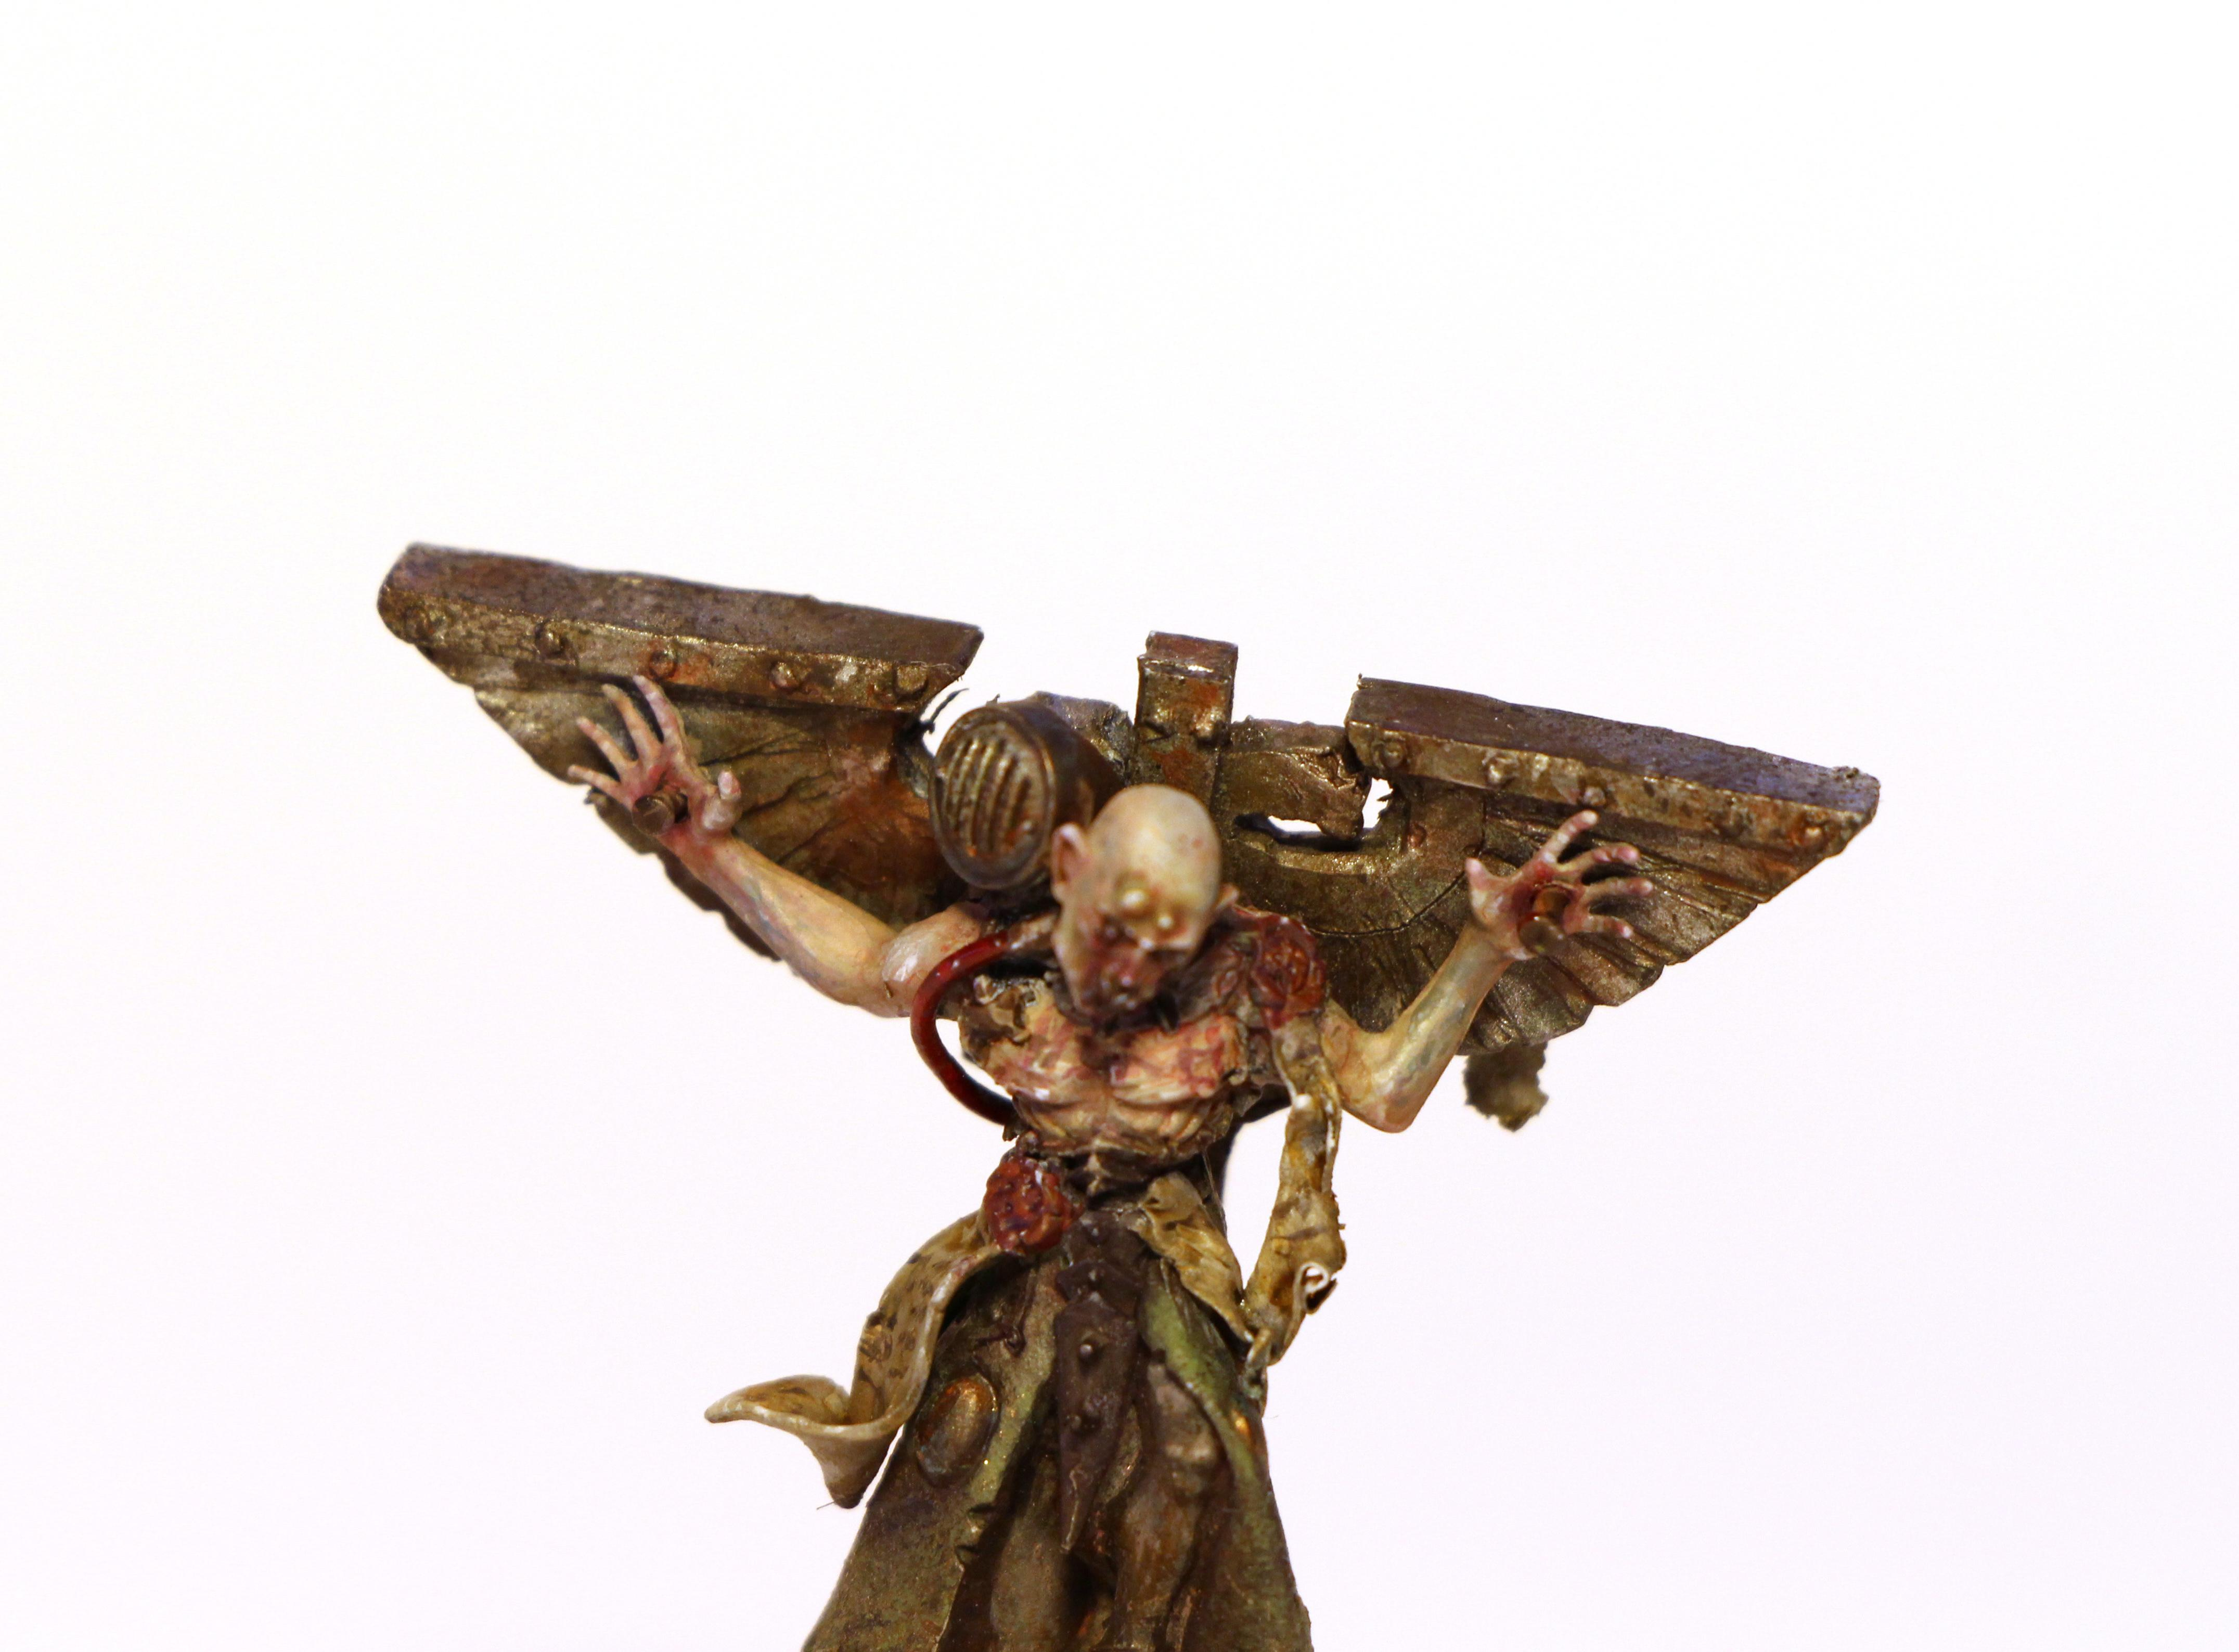 Crucifixion, Inquisition, Psyker